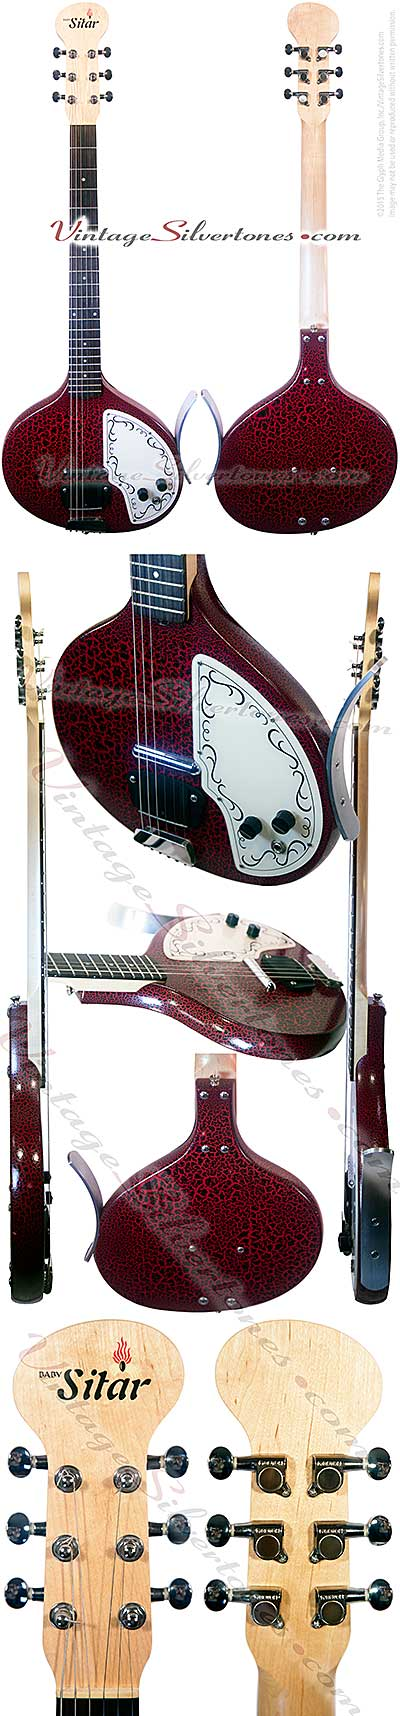 Jery Jones, baby sitar, red gator finish, 1 lipstick tube pickup, circa 1990